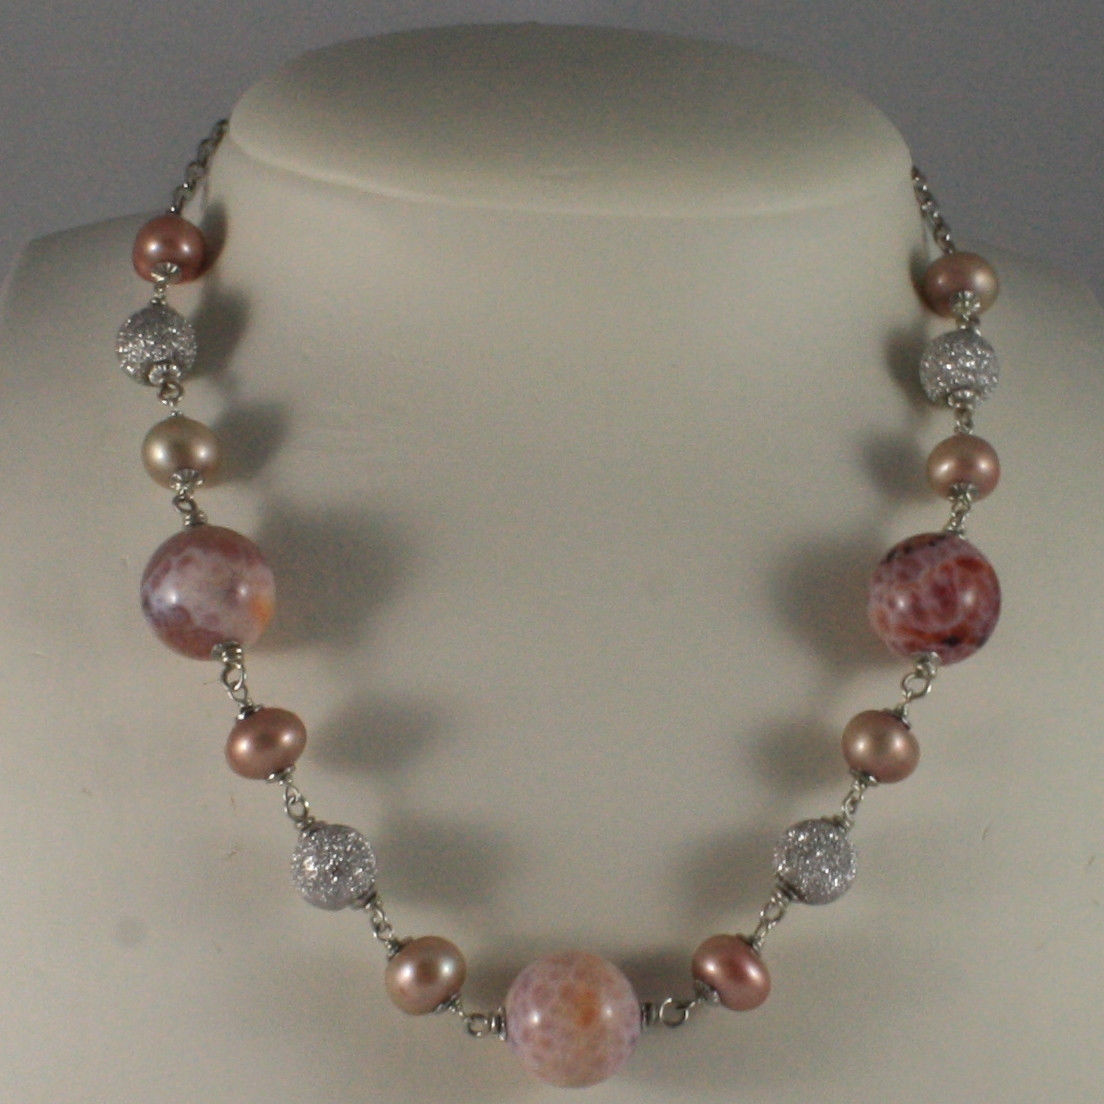 .925 SILVER RHODIUM NECKLACE WITH PINK PEARLS, PINK AGATE AND SILVER SPHERES